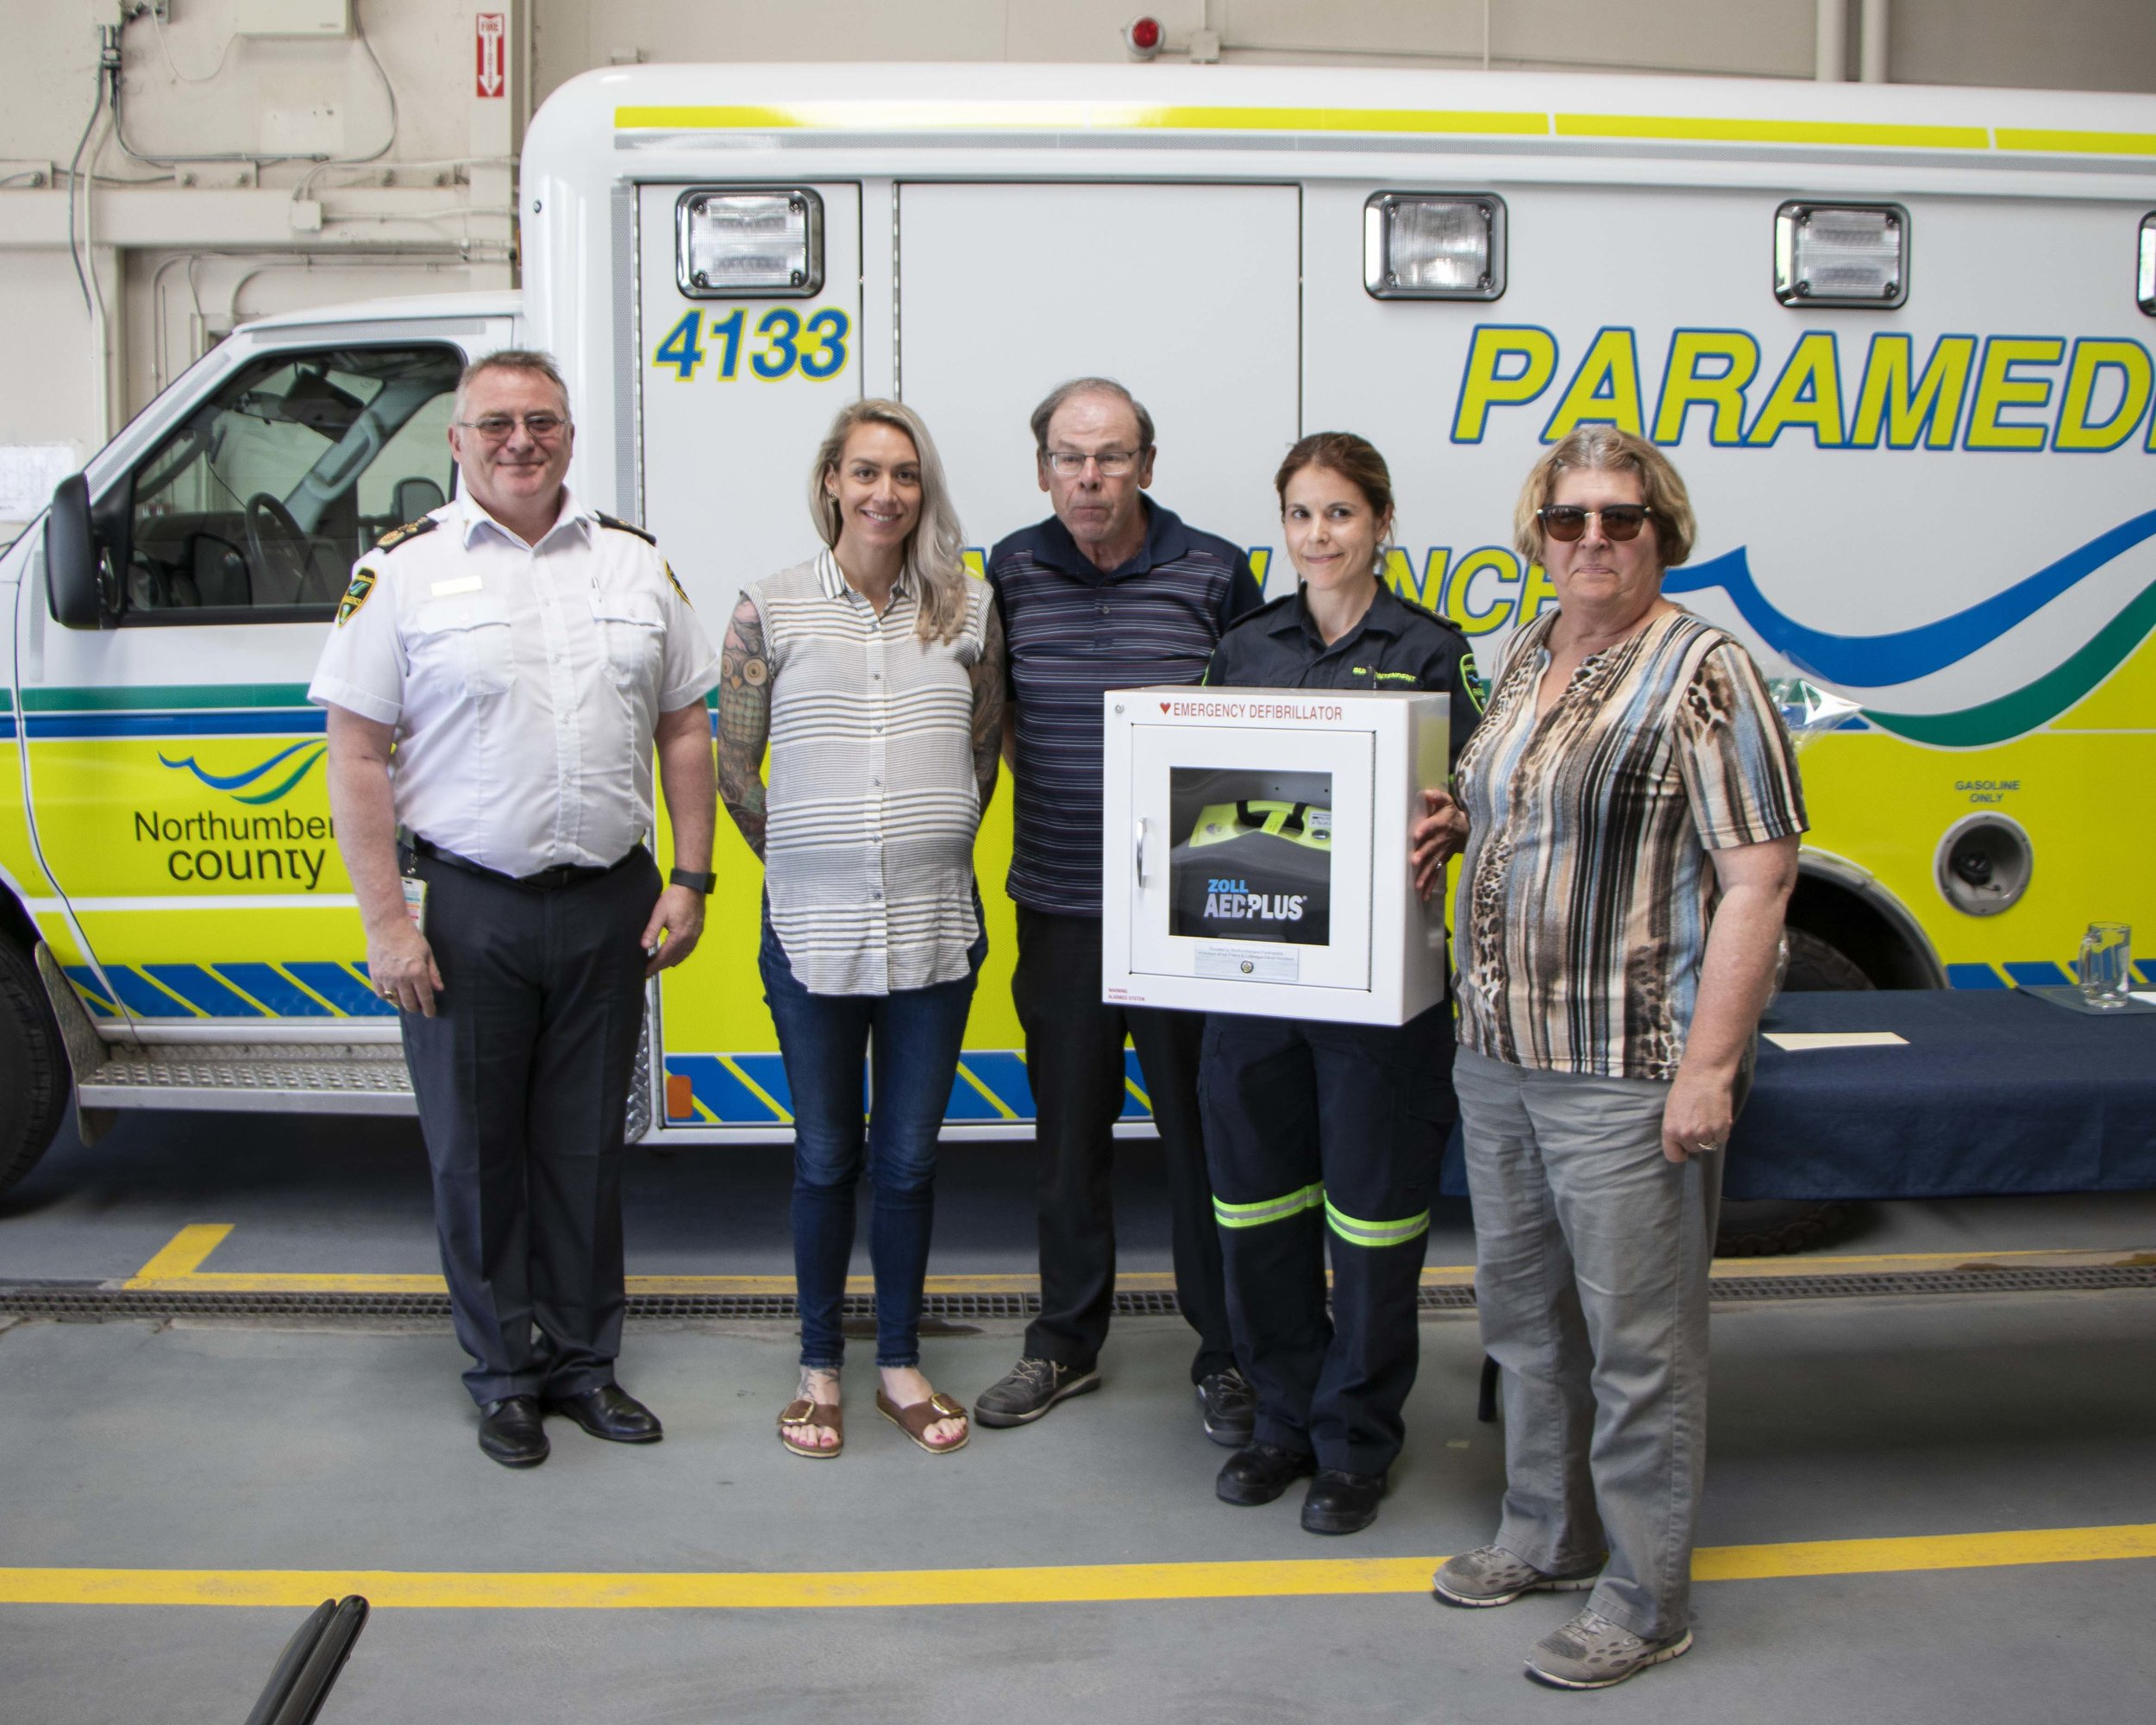 From left: Northumberland Paramedics Chief Bill Detlor, paramedic Giselle Philip, Phil Kift of the Centreton Community Centre, paramedic superintendent Marcelle Johnson and Edith Kift of the Centreton Community Centre